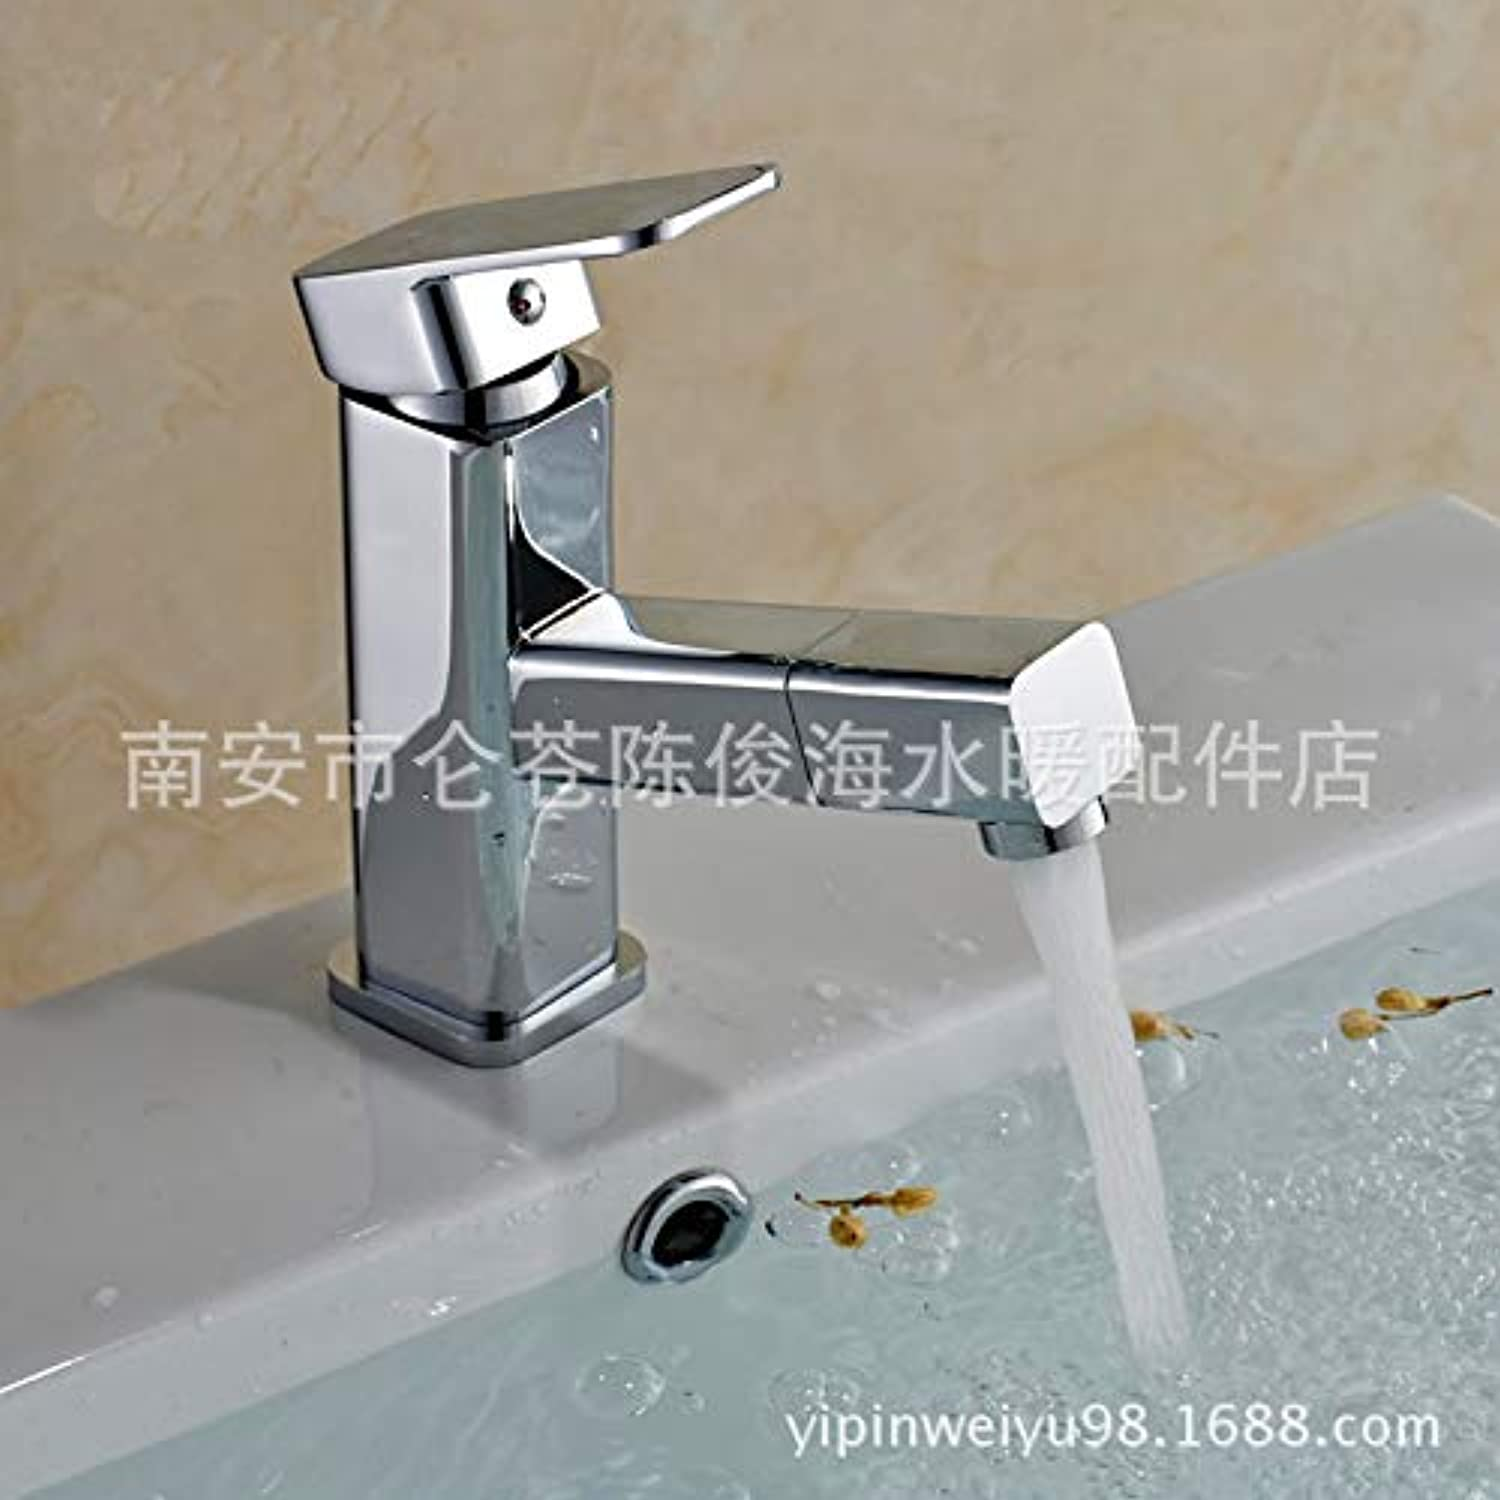 redOOY Copper Faucet All Copper Pull Faucet Bathroom Wash Basin Single Hole Basin Shampoo Hot And Cold Telescopic redation